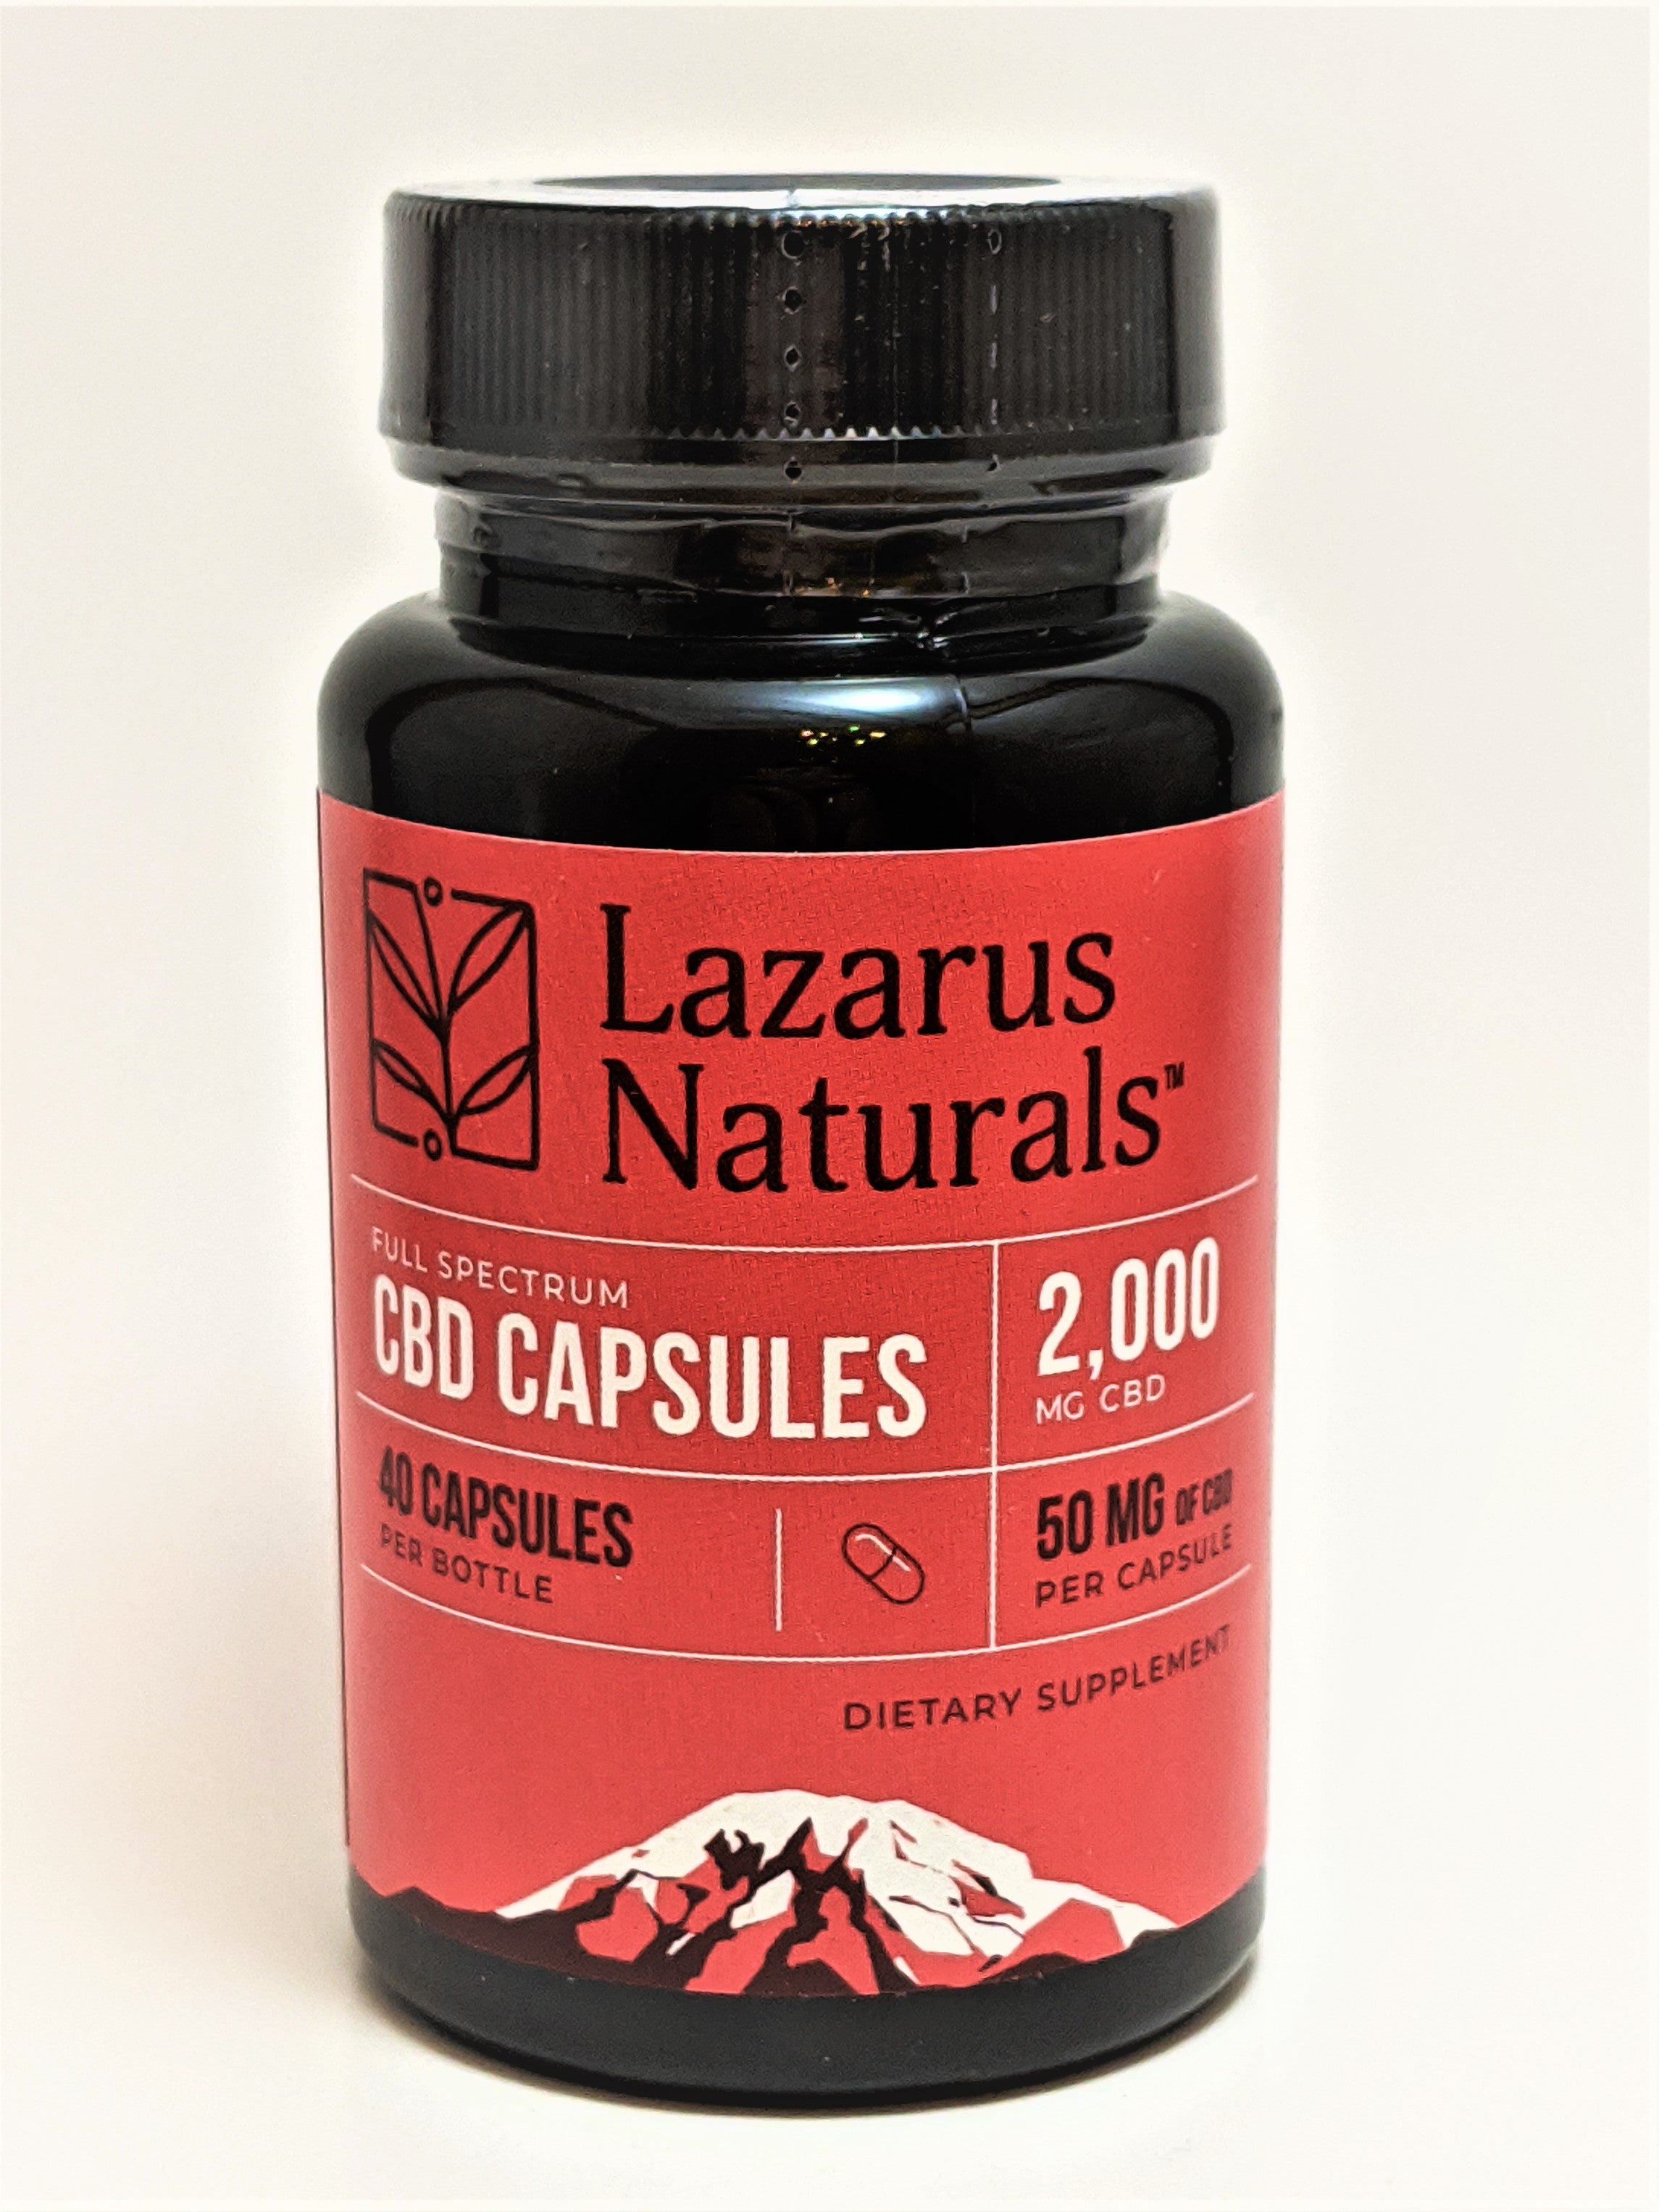 Lazarus Naturals Full Spectrum 50 mg capsules (40 count bottle) - CBD Central